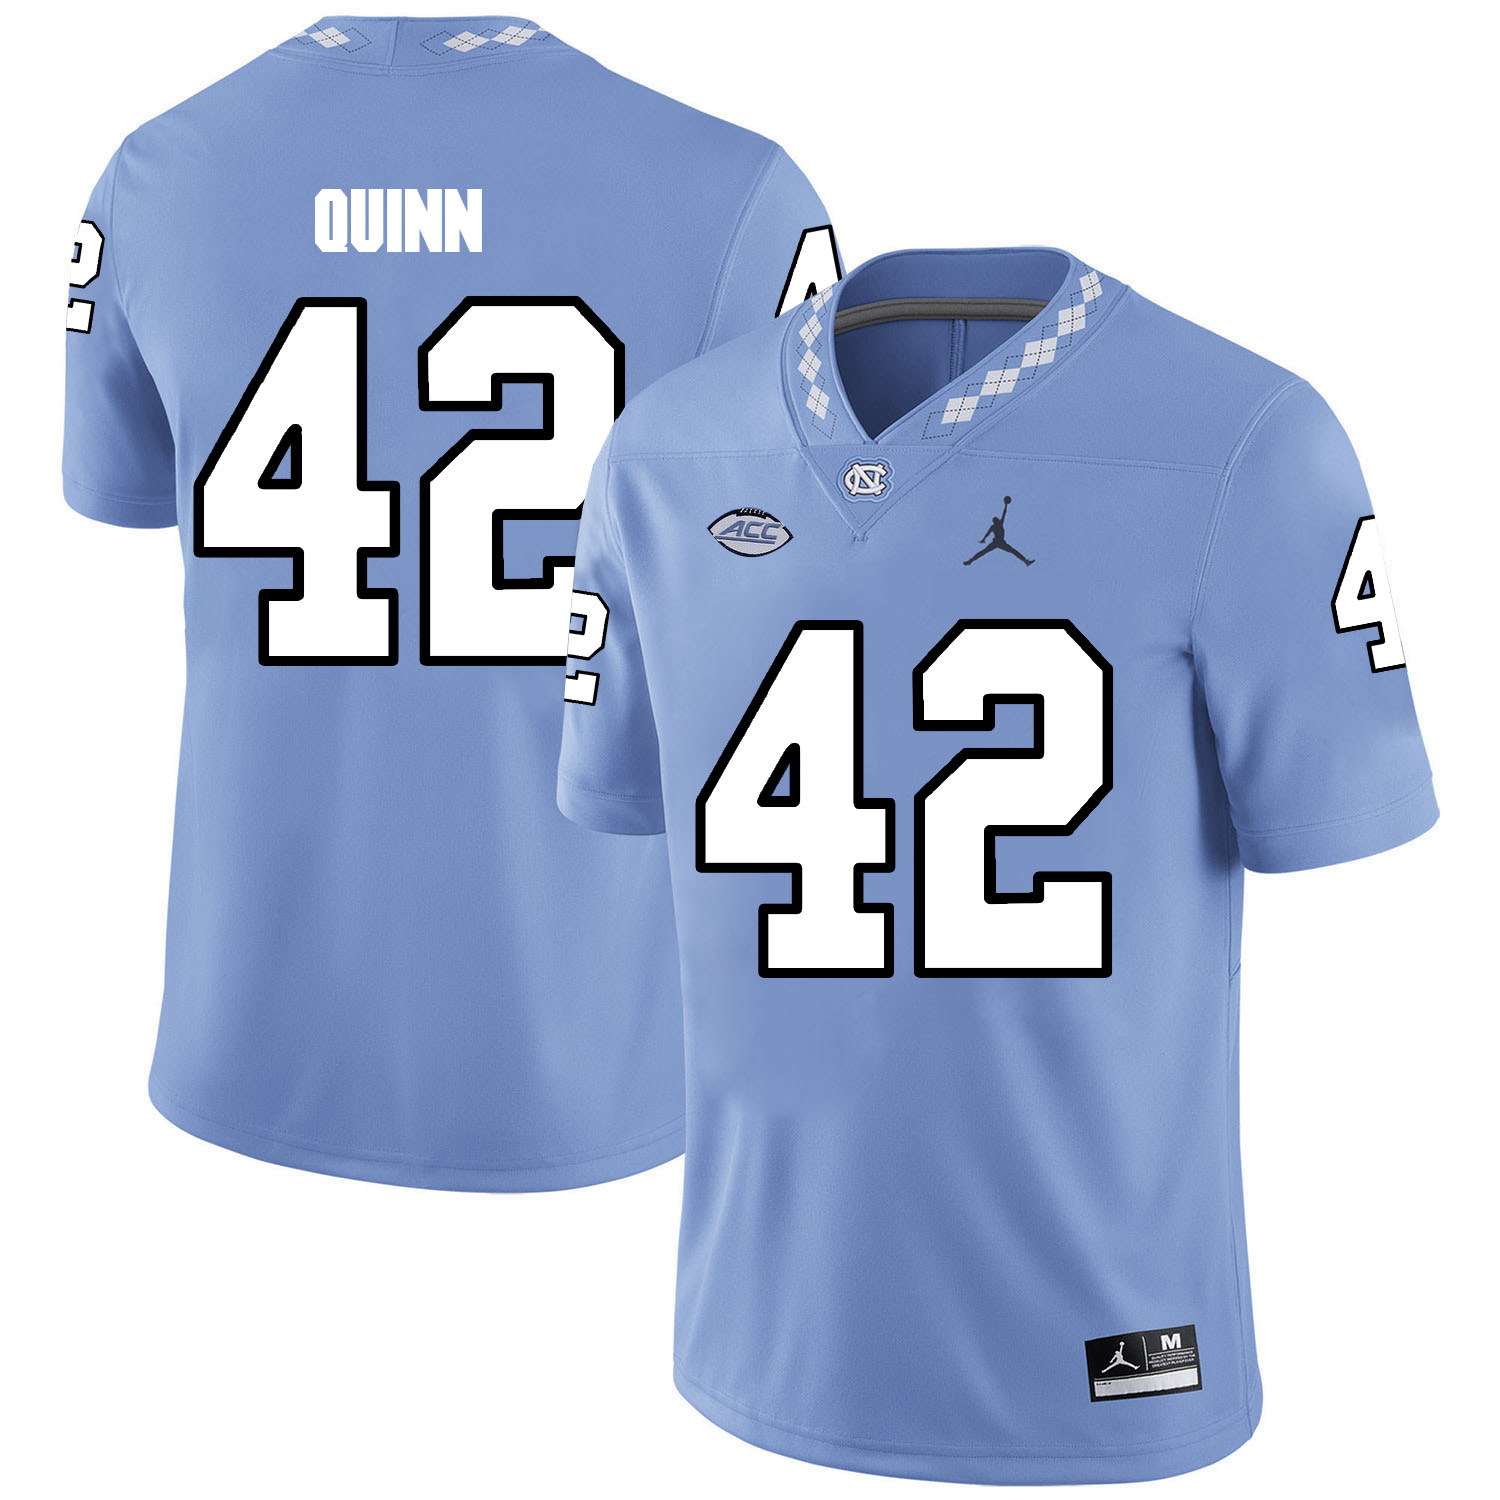 North Carolina Tar Heels 42 Robert Quinn Blue College Football Jersey